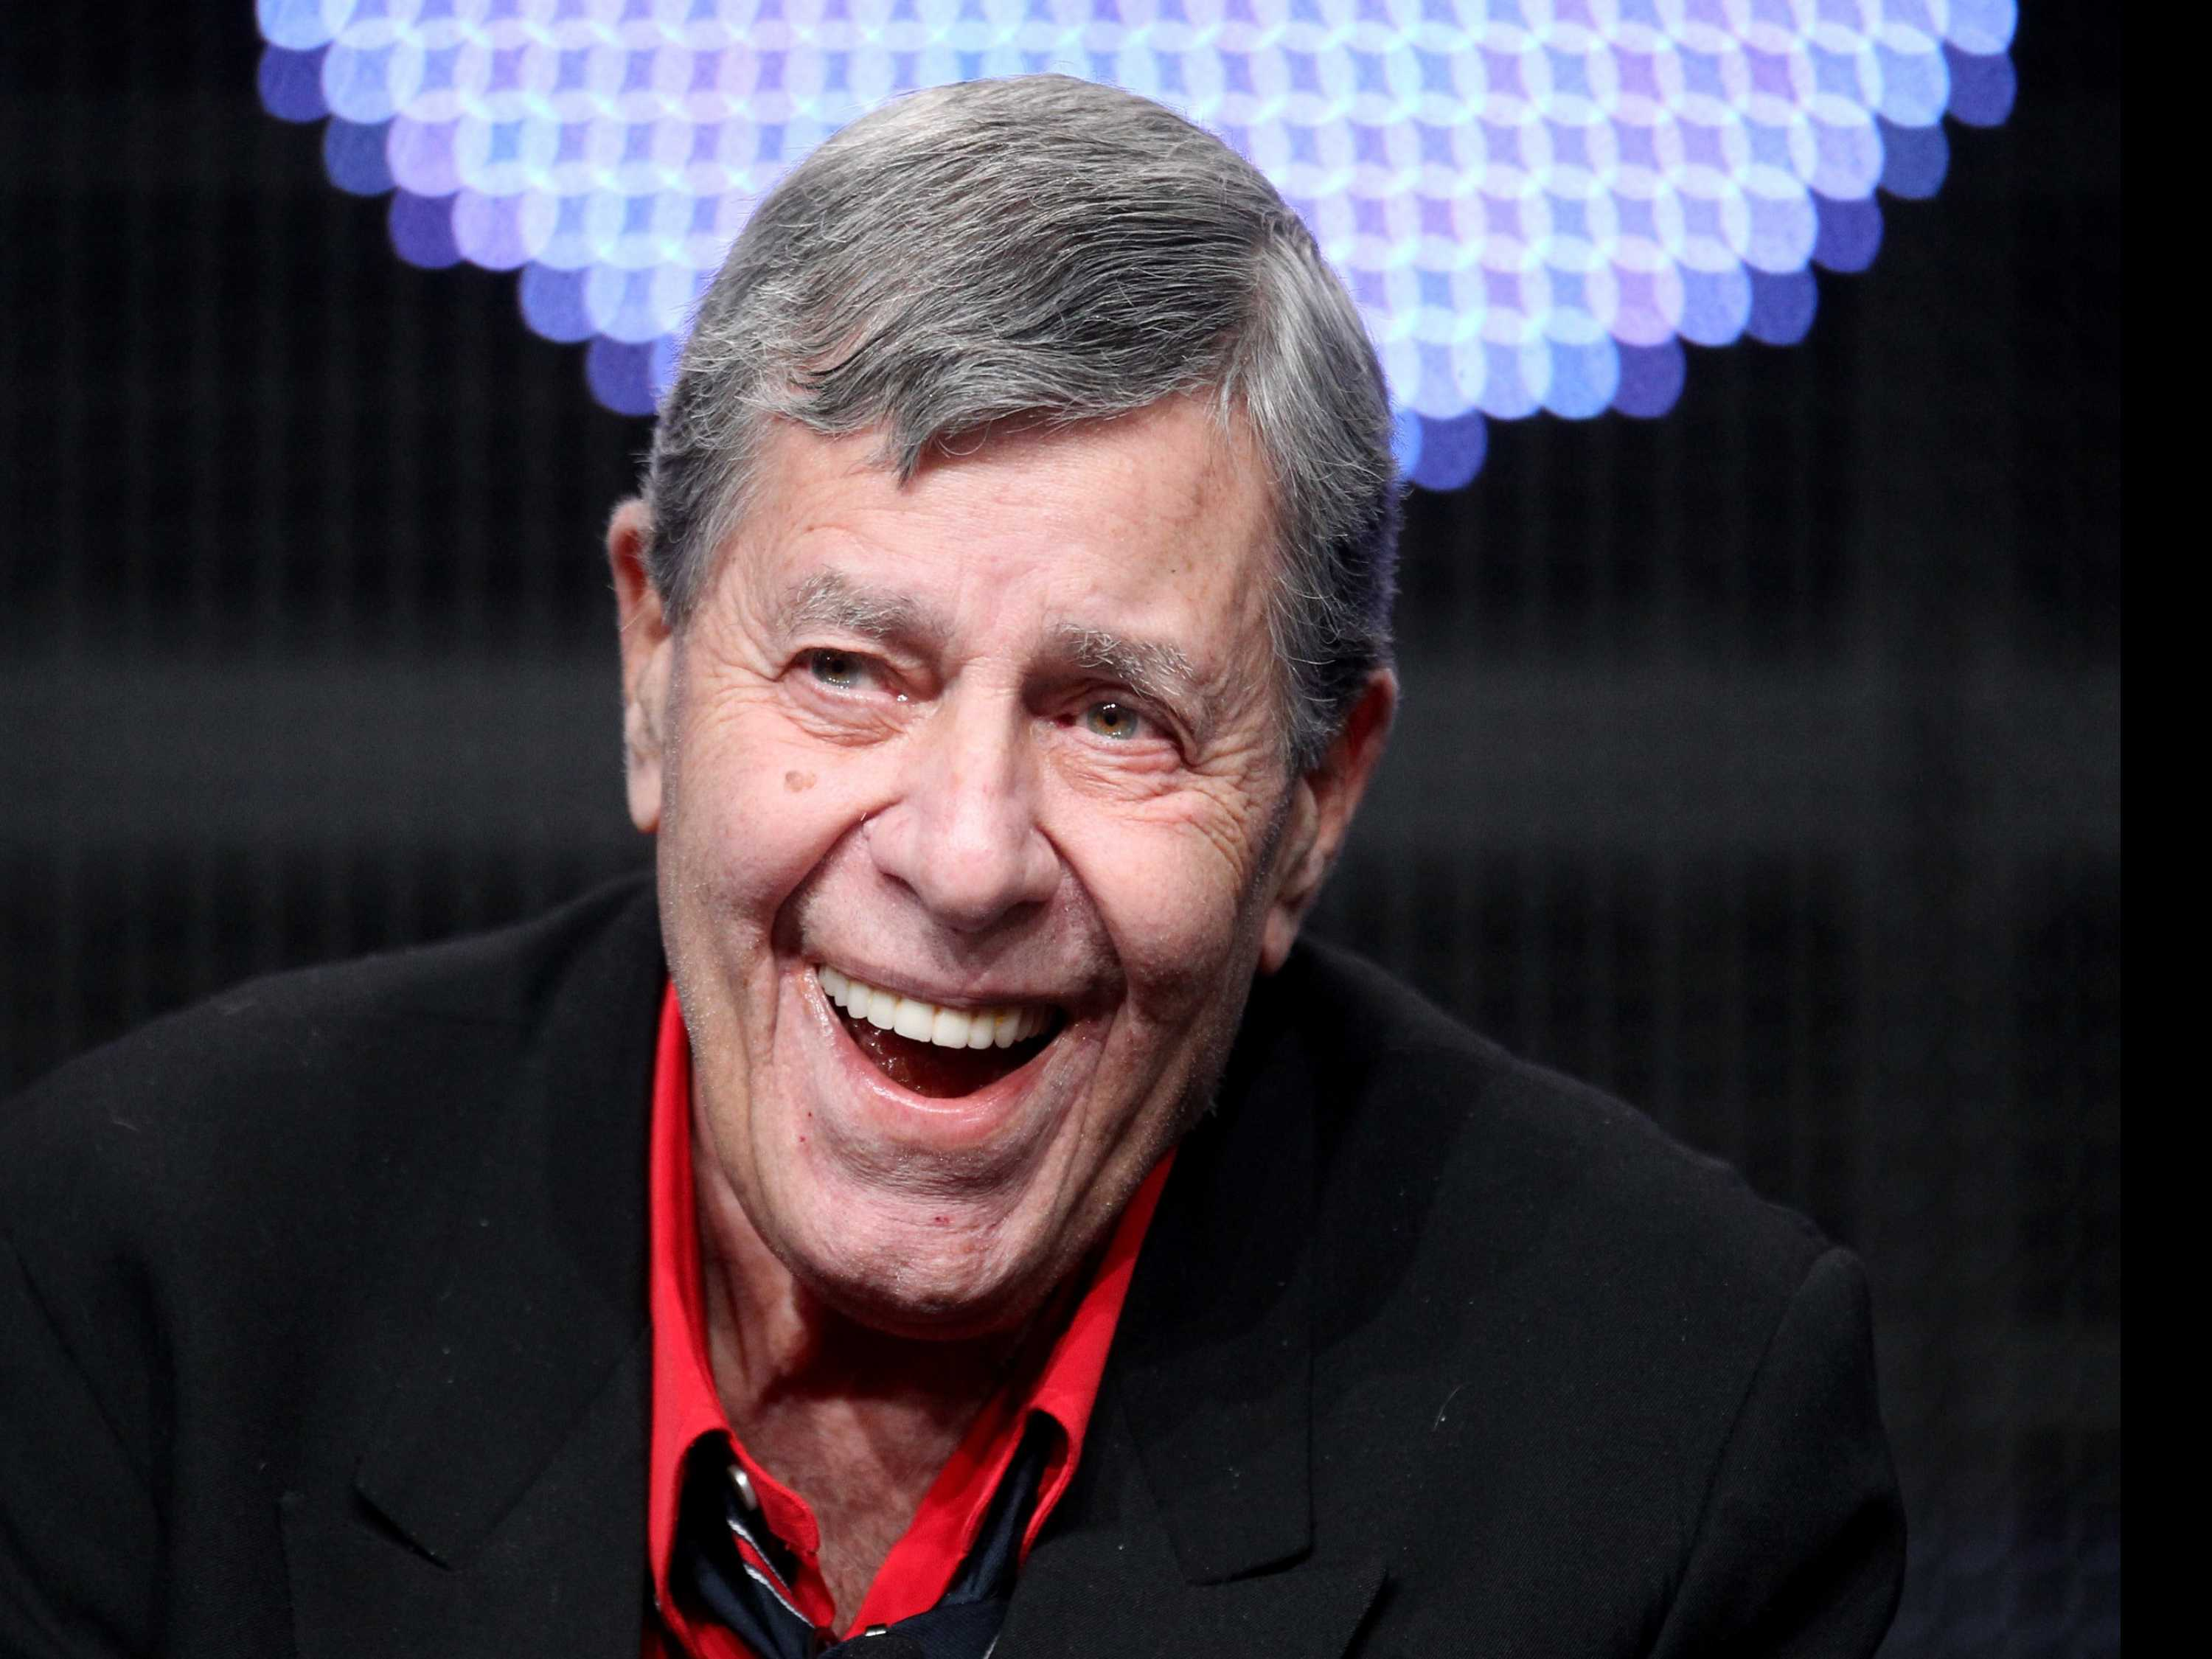 Publicist: Jerry Lewis, Comedian, Telethon Host, Dies at 91